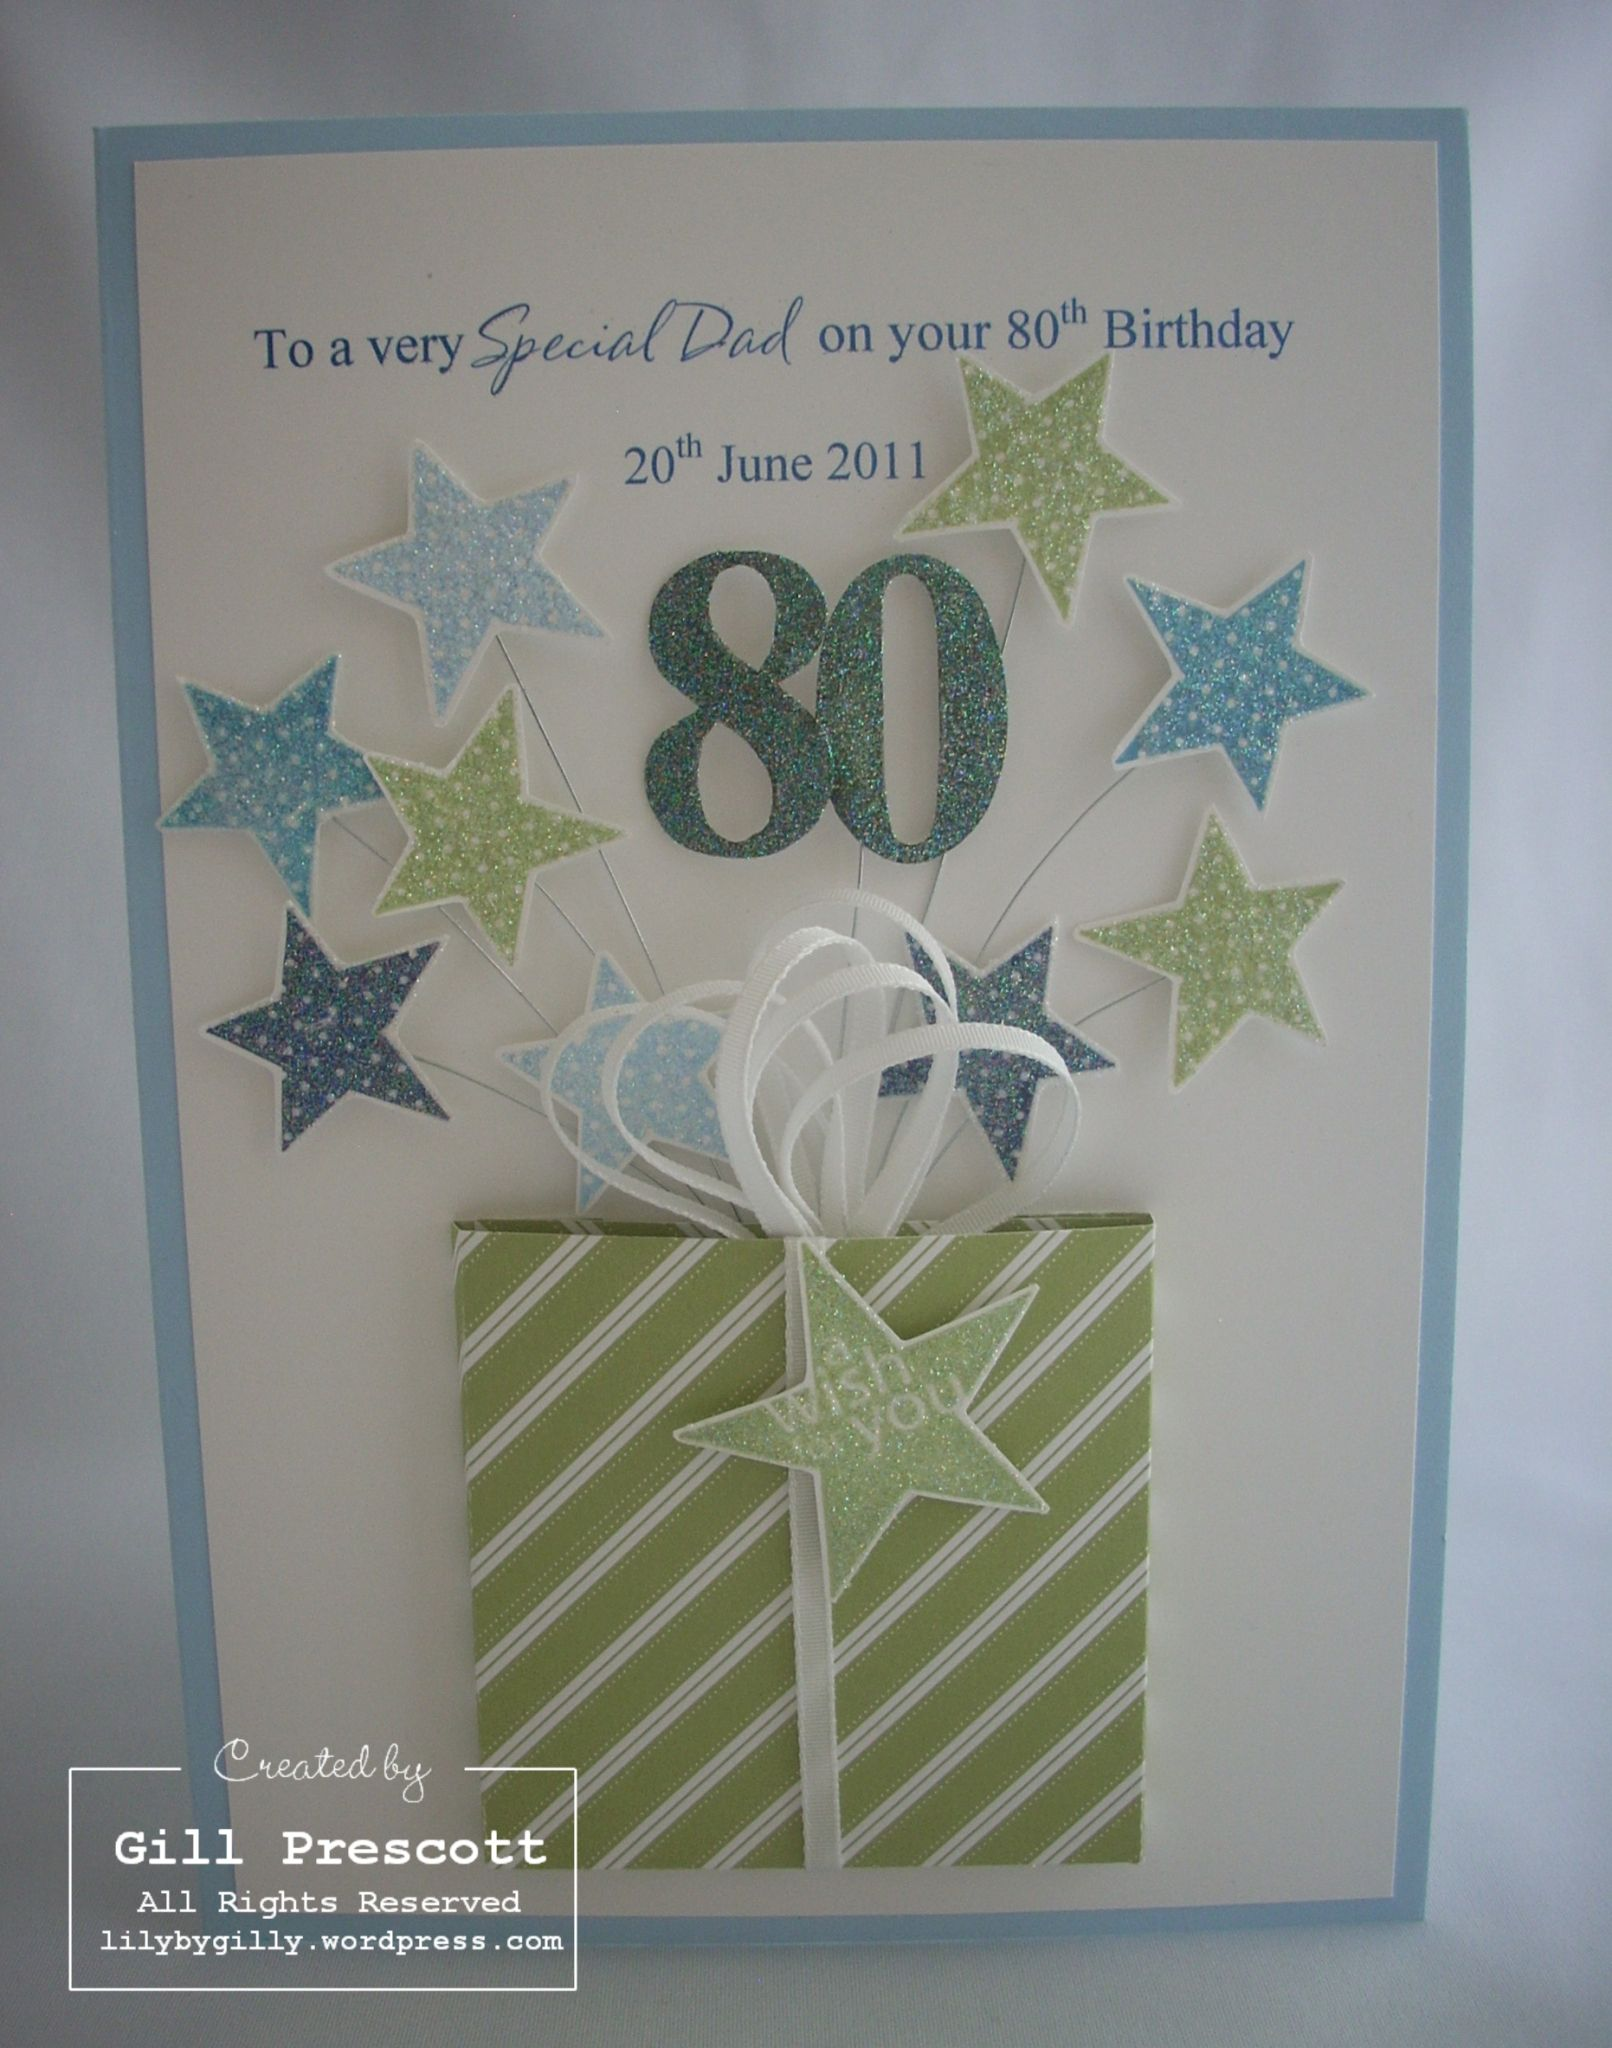 My Lovely Friend And Neighbour Asked Me To Make An 80th Birthday Card For Her Dad She Wanted Differe 80th Birthday Cards Special Birthday Cards Cards Handmade